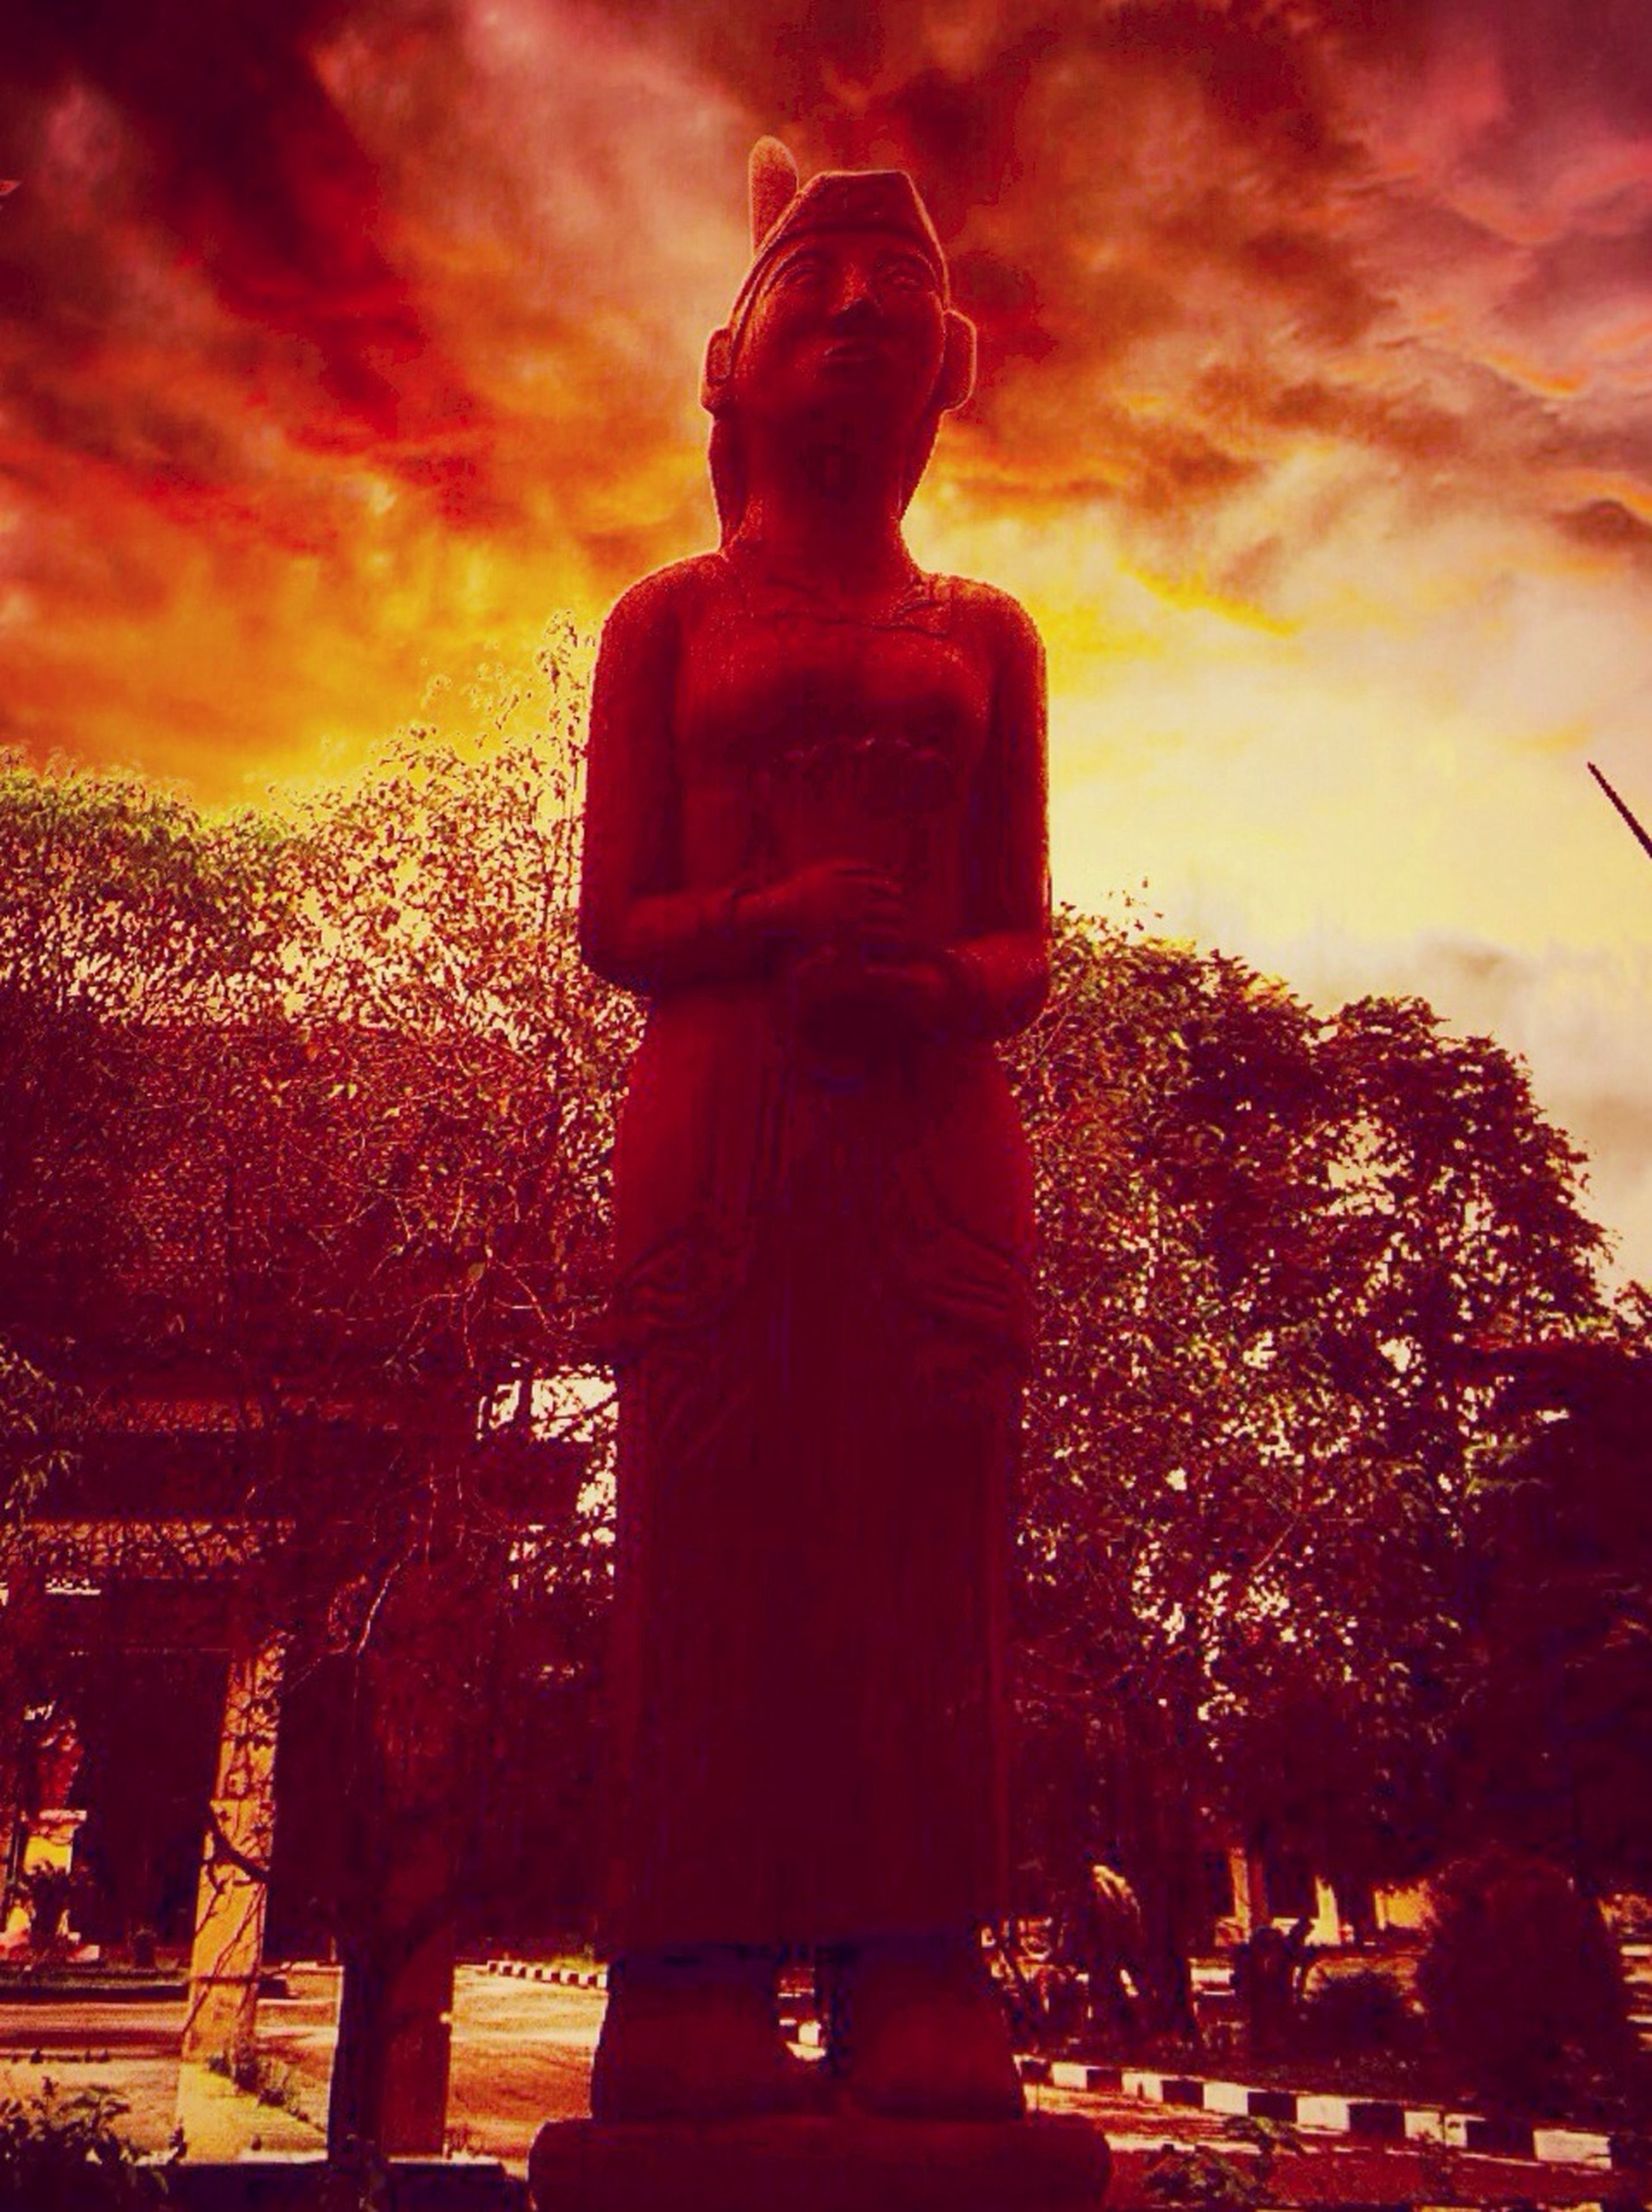 sky, statue, sunset, sculpture, cloud - sky, human representation, art and craft, religion, art, tree, spirituality, silhouette, temple - building, creativity, low angle view, orange color, place of worship, cloudy